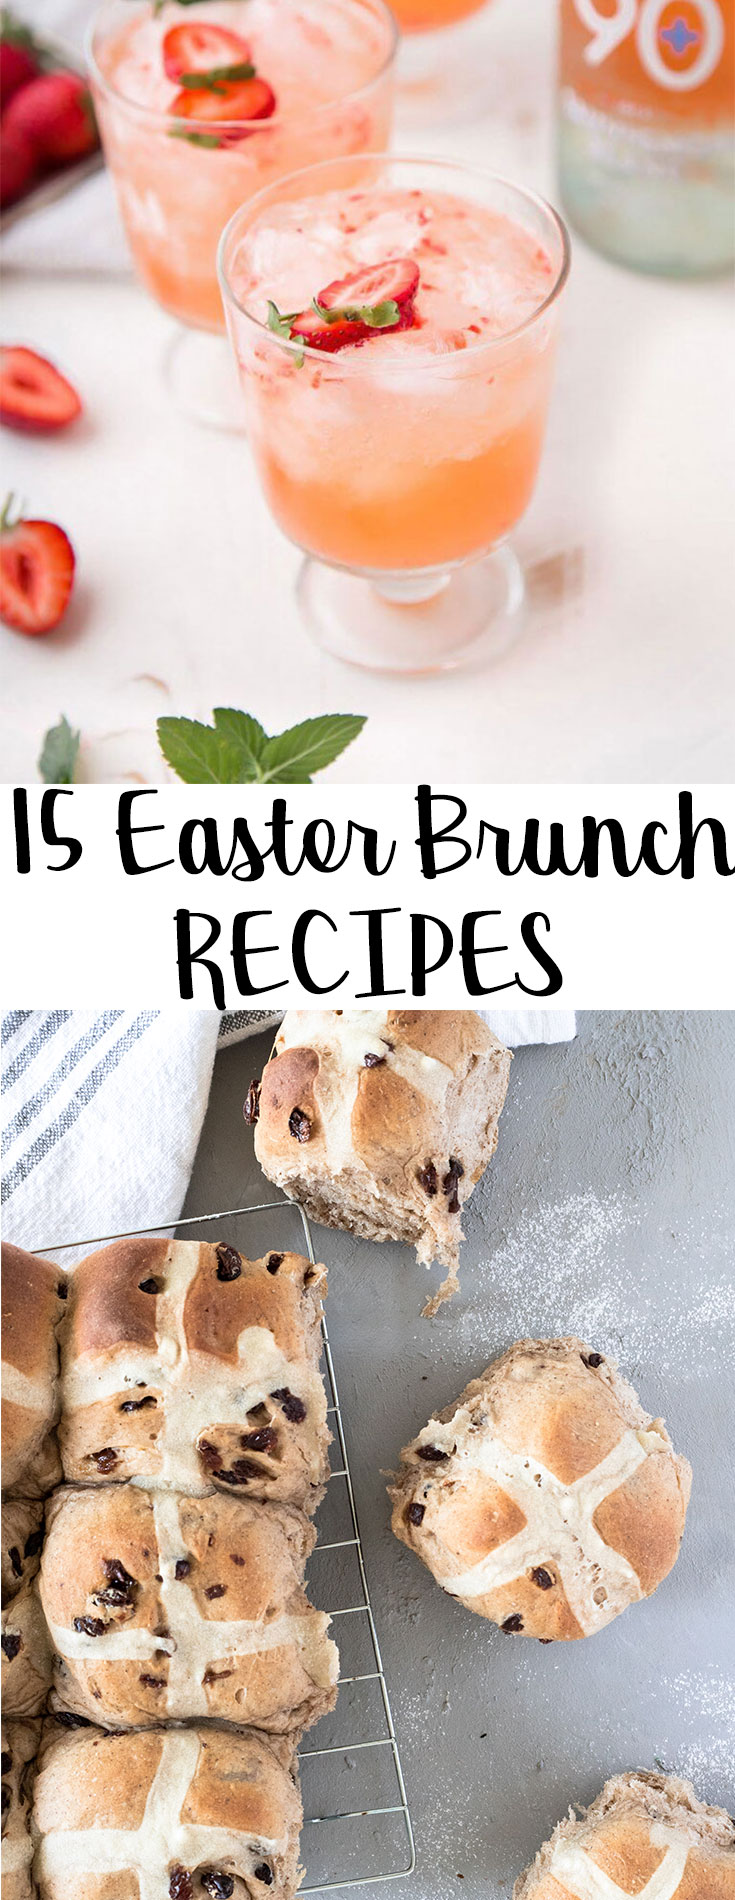 Looking for some last minute #easter recipe ideas? This roundup of 15 Easter Brunch Recipes will help you plan for Easter feast! Sweet, savoury and of course some cocktails! #easterbrunch #brunch